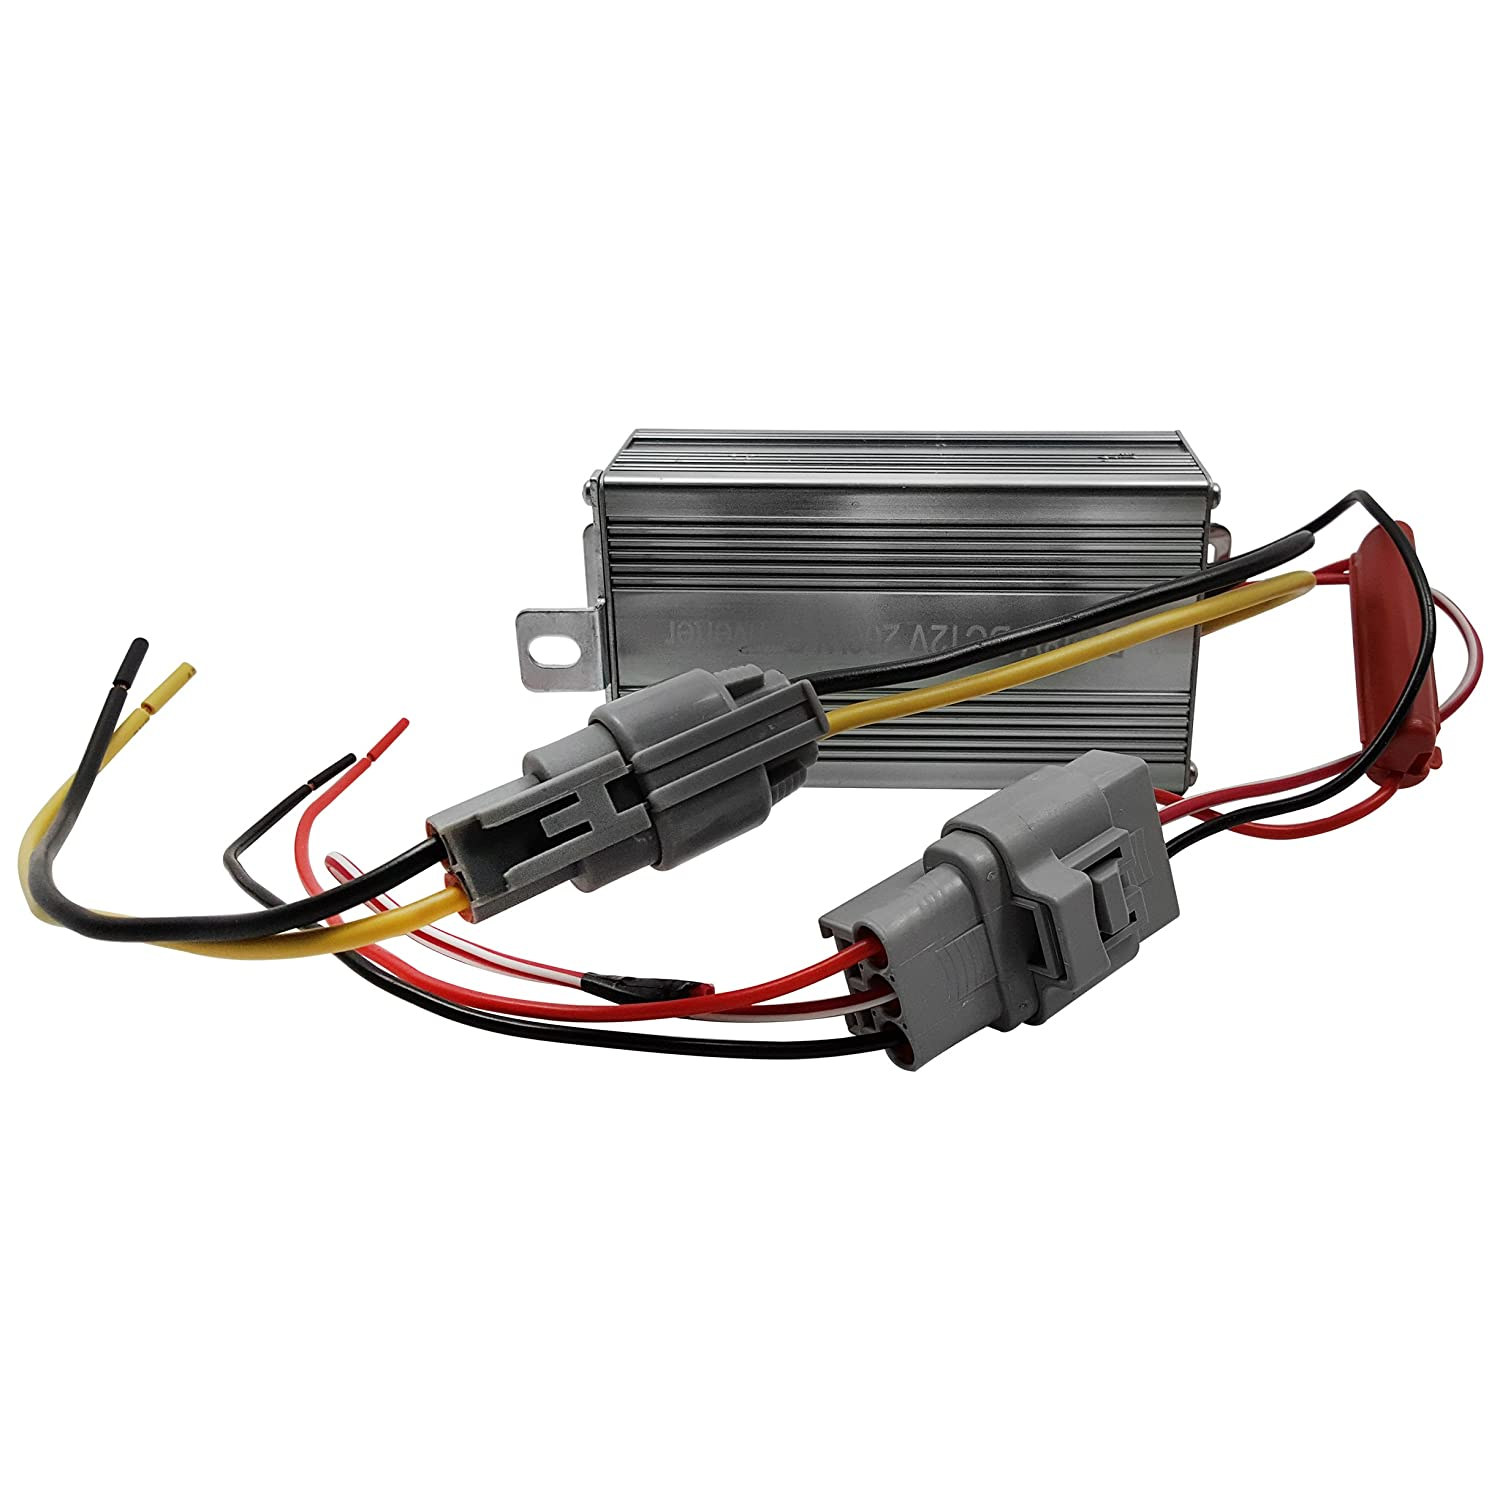 New Ezgo Rxv Light Kit 18 Amp Voltage Reducer 48 To 12 6 Volt Golf Cart Wiring Diagram Sports Outdoors